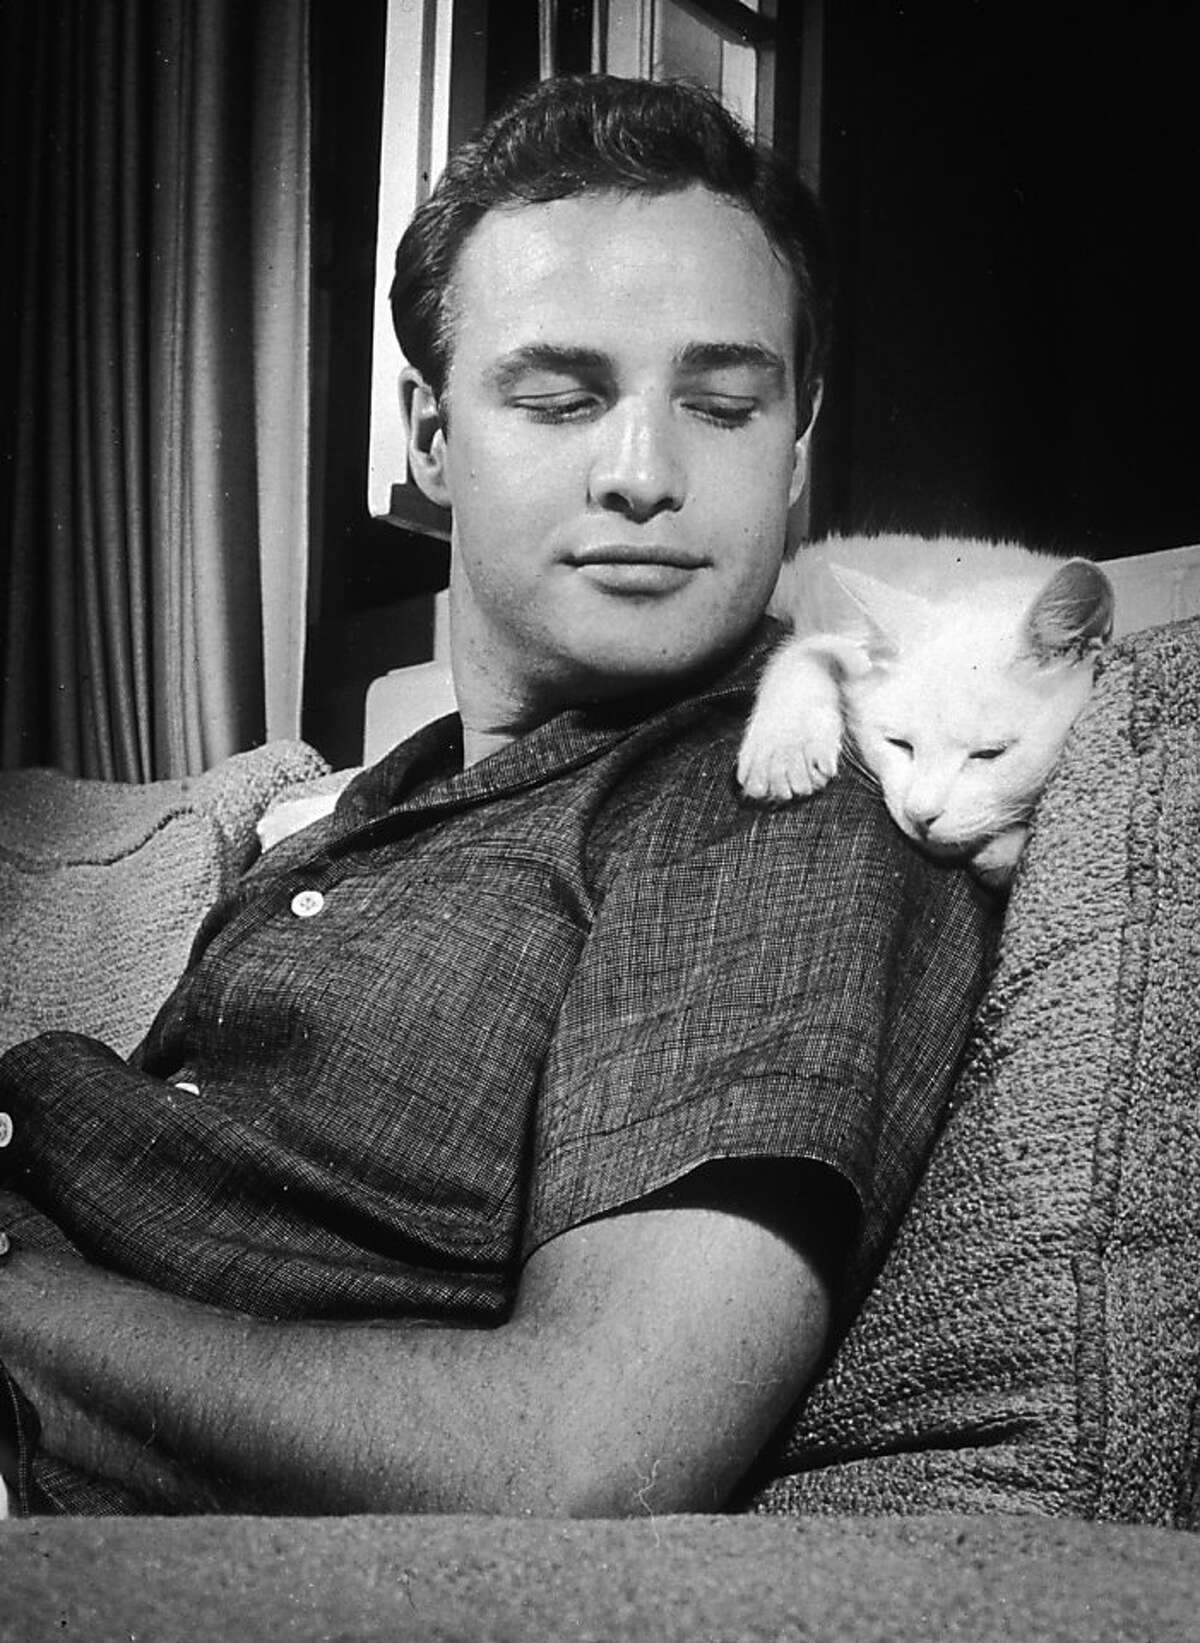 Marlon Brando leans back on a sofa and smiles at his cat, who lays across his shoulders, at his home in Los Angeles in 1954.